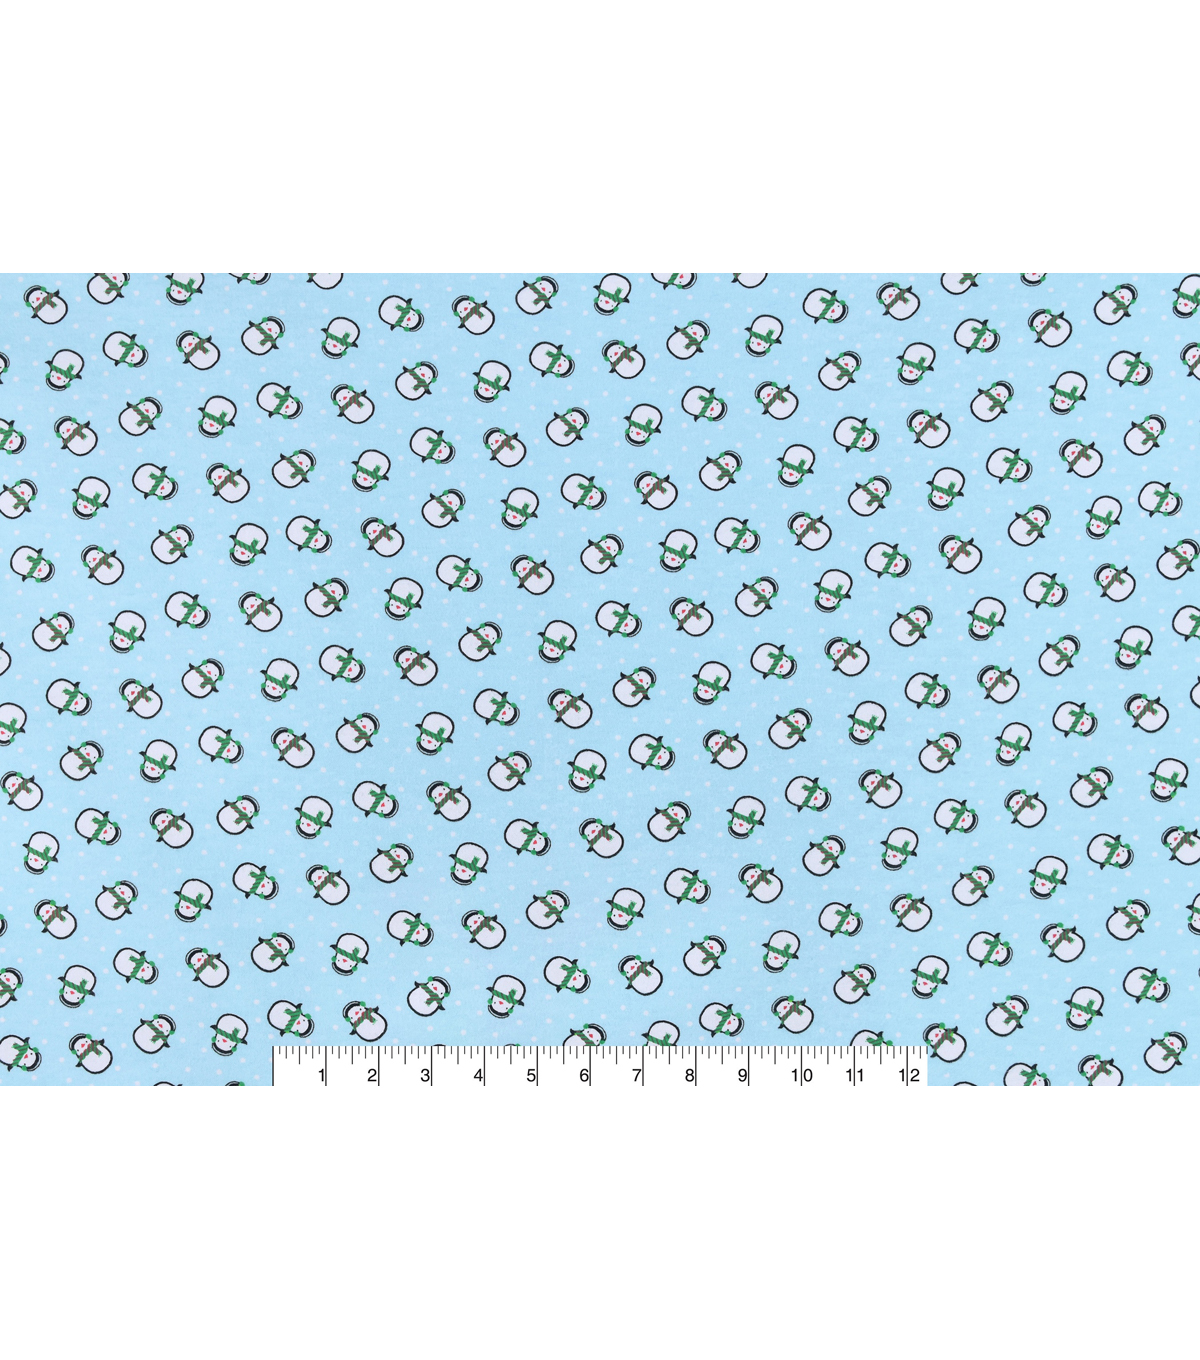 Snuggle Flannel Fabric -Round Penguin Tossed